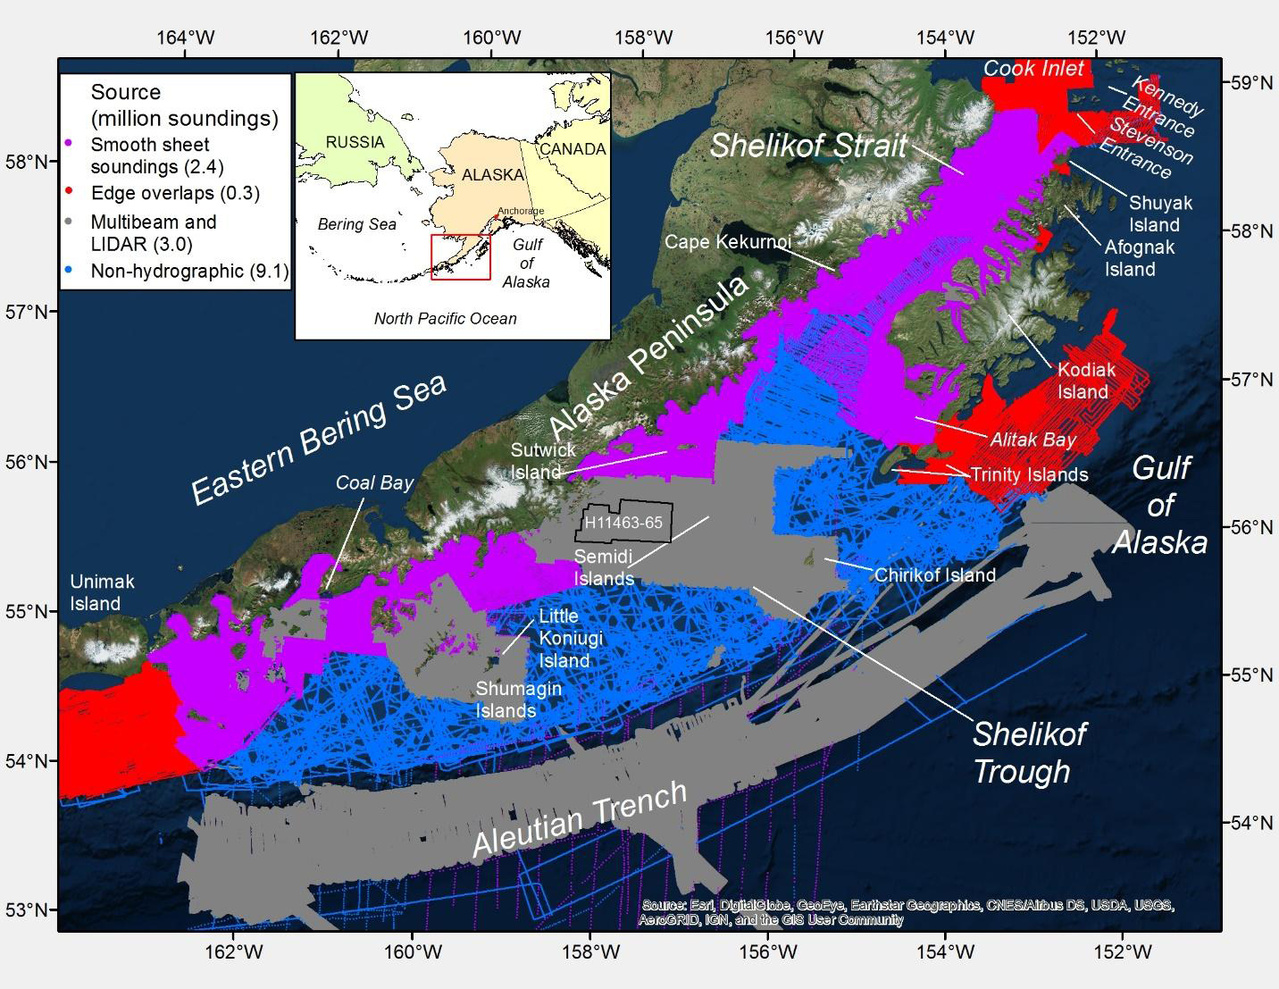 Sources of bathymetry data used to create new seafloor maps.